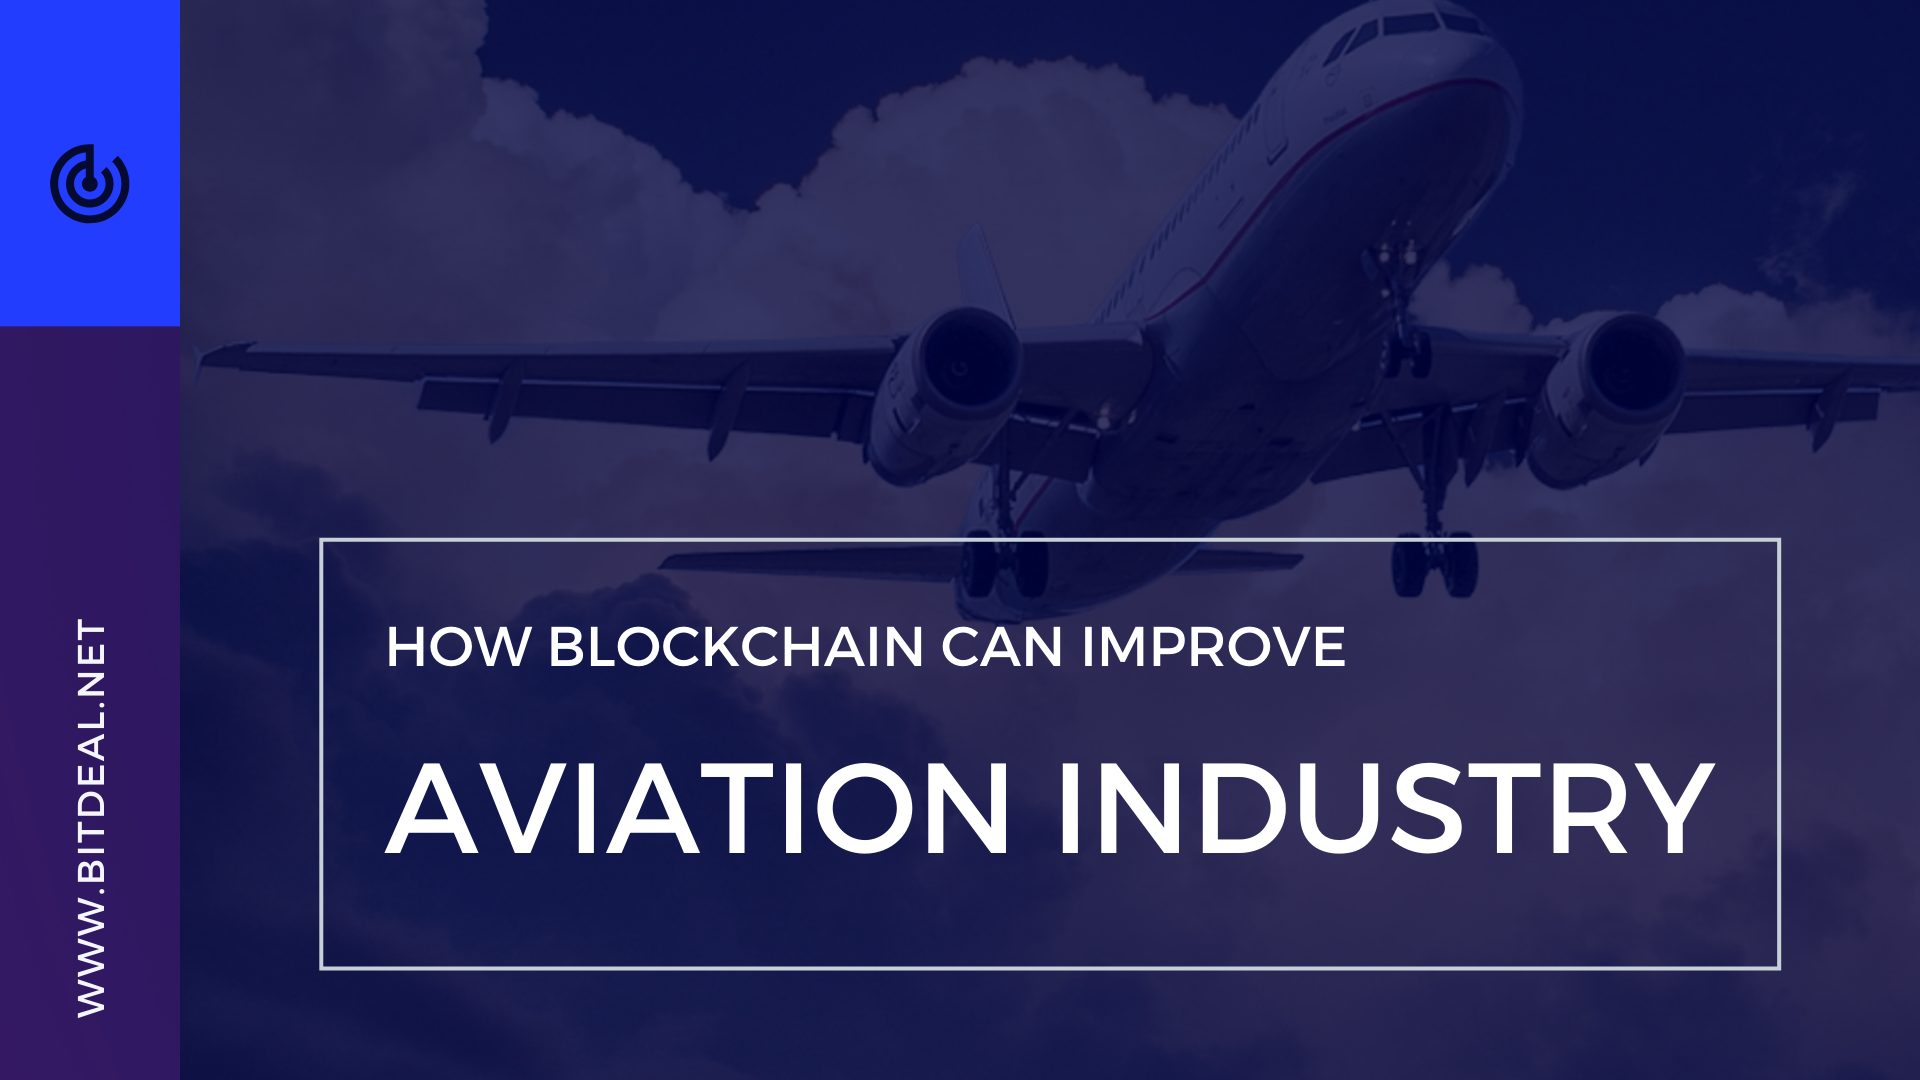 What Are The Challenges Faced By The Aviation Industry Blockchain Development Blockchain Technology